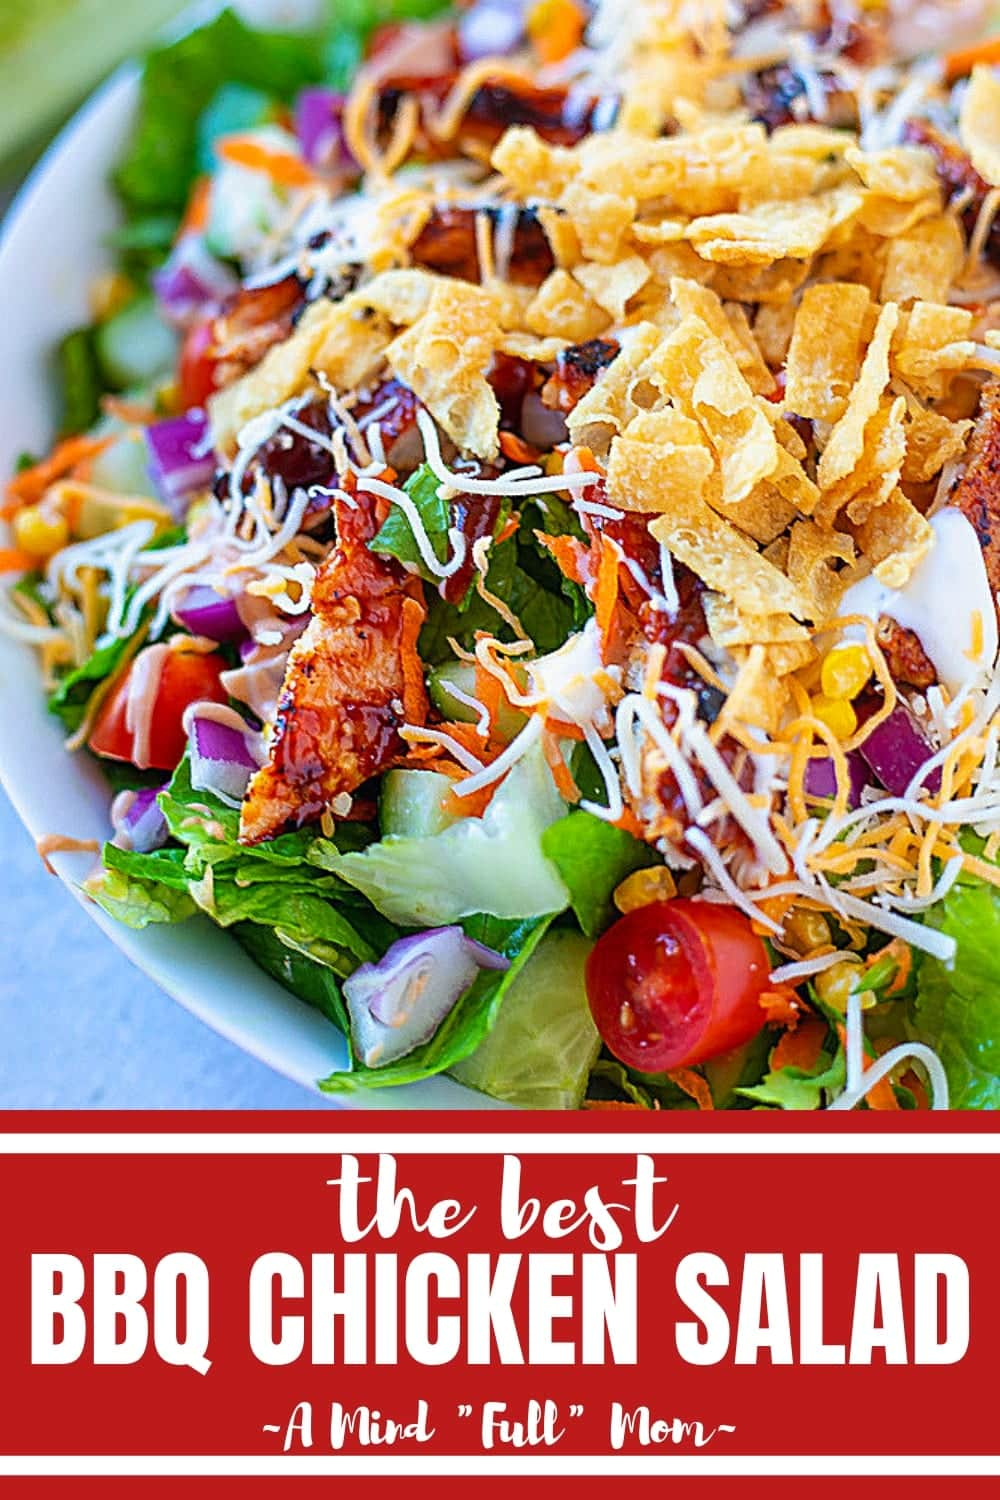 This BBQ Chicken Salad is one of the BEST salads ever! Grilled BBQ Chicken is tossed with crunchy romaine, sweet corn, sharp red onions, juicy tomatoes, fresh cucumber, shredded cheese, crunchy tortilla chips and a barbecue ranch dressing. BBQ Chicken Salad is fresh, filling, creamy, tangy, and just down right delicious. #bbqchicken #salad